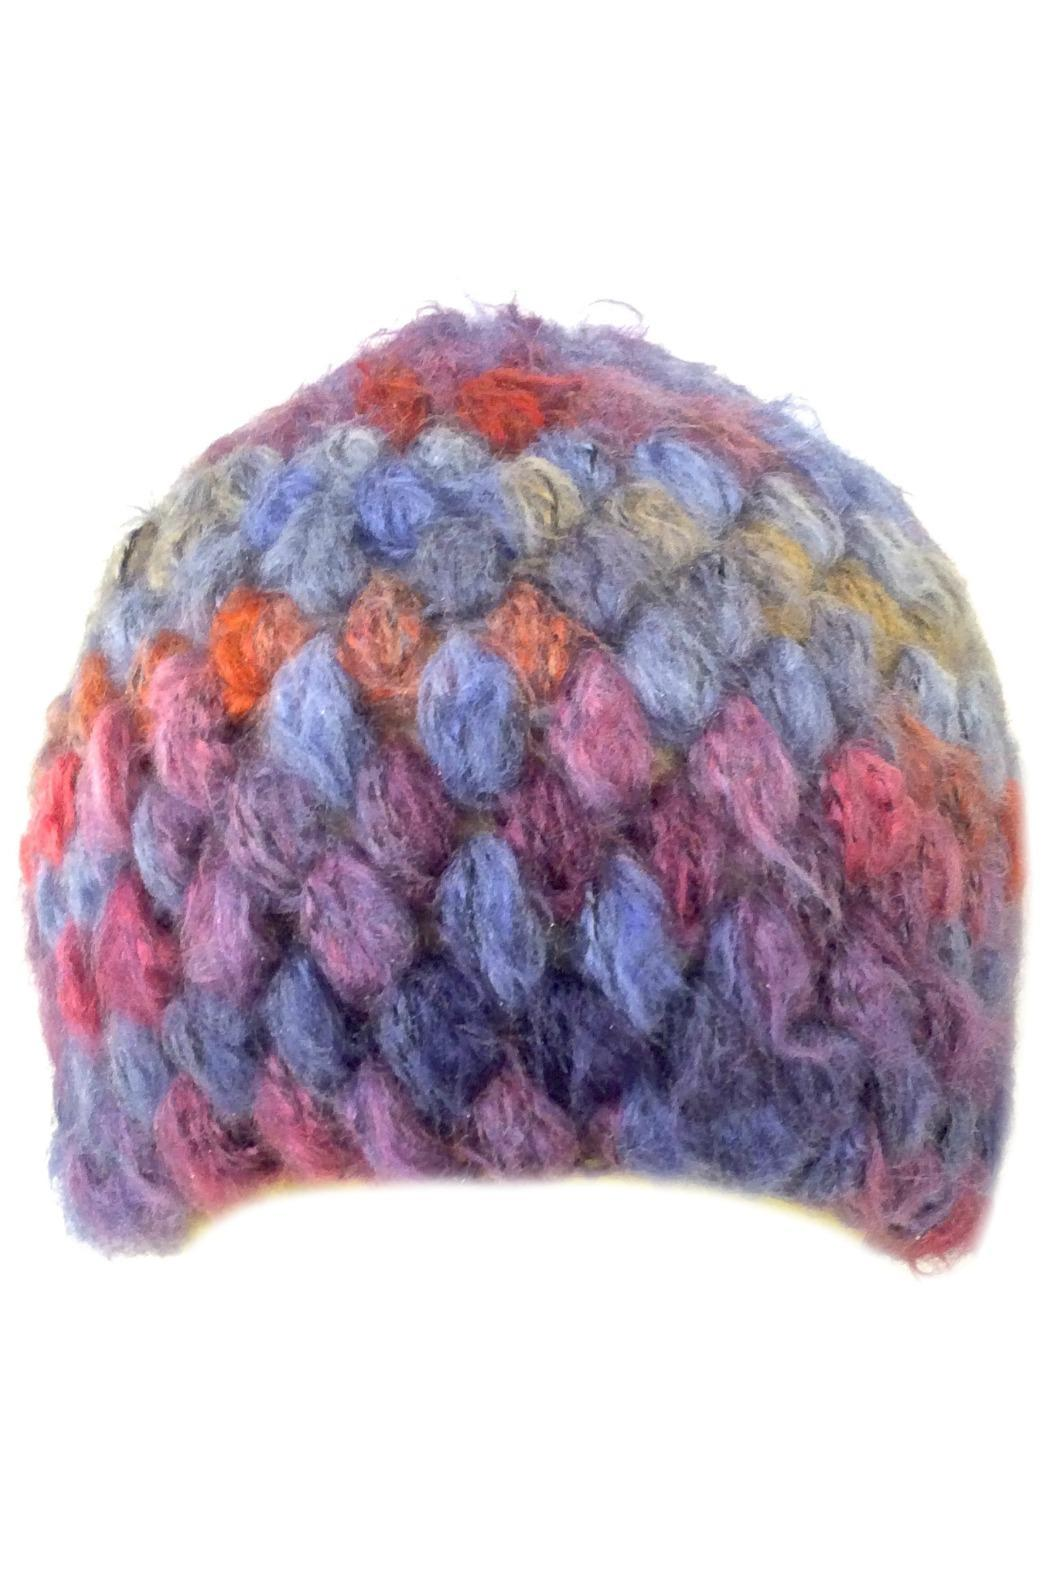 Grevi Mohair Knitted Beanie from Portland by Moods of Florence   Shoptiques